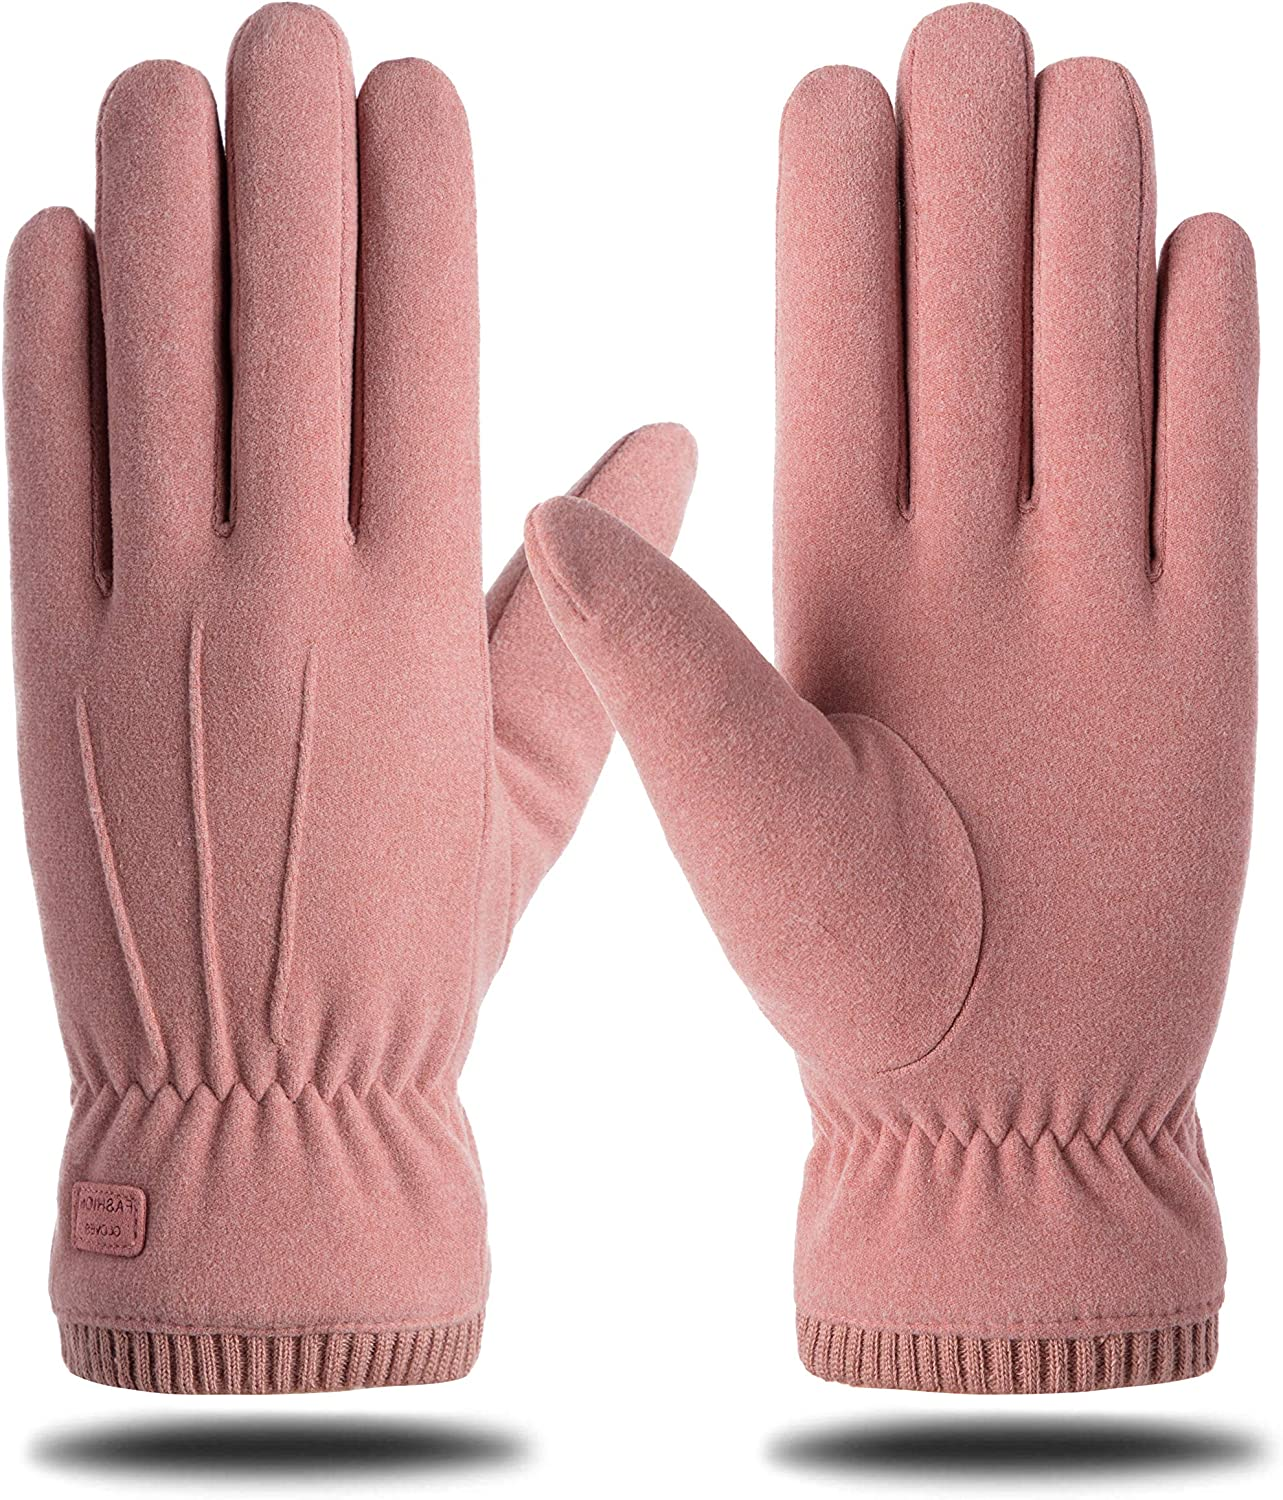 Womens Winter Warm Touchscreen Gloves Thermal Soft Lining Elastic Cuff Texting Glove